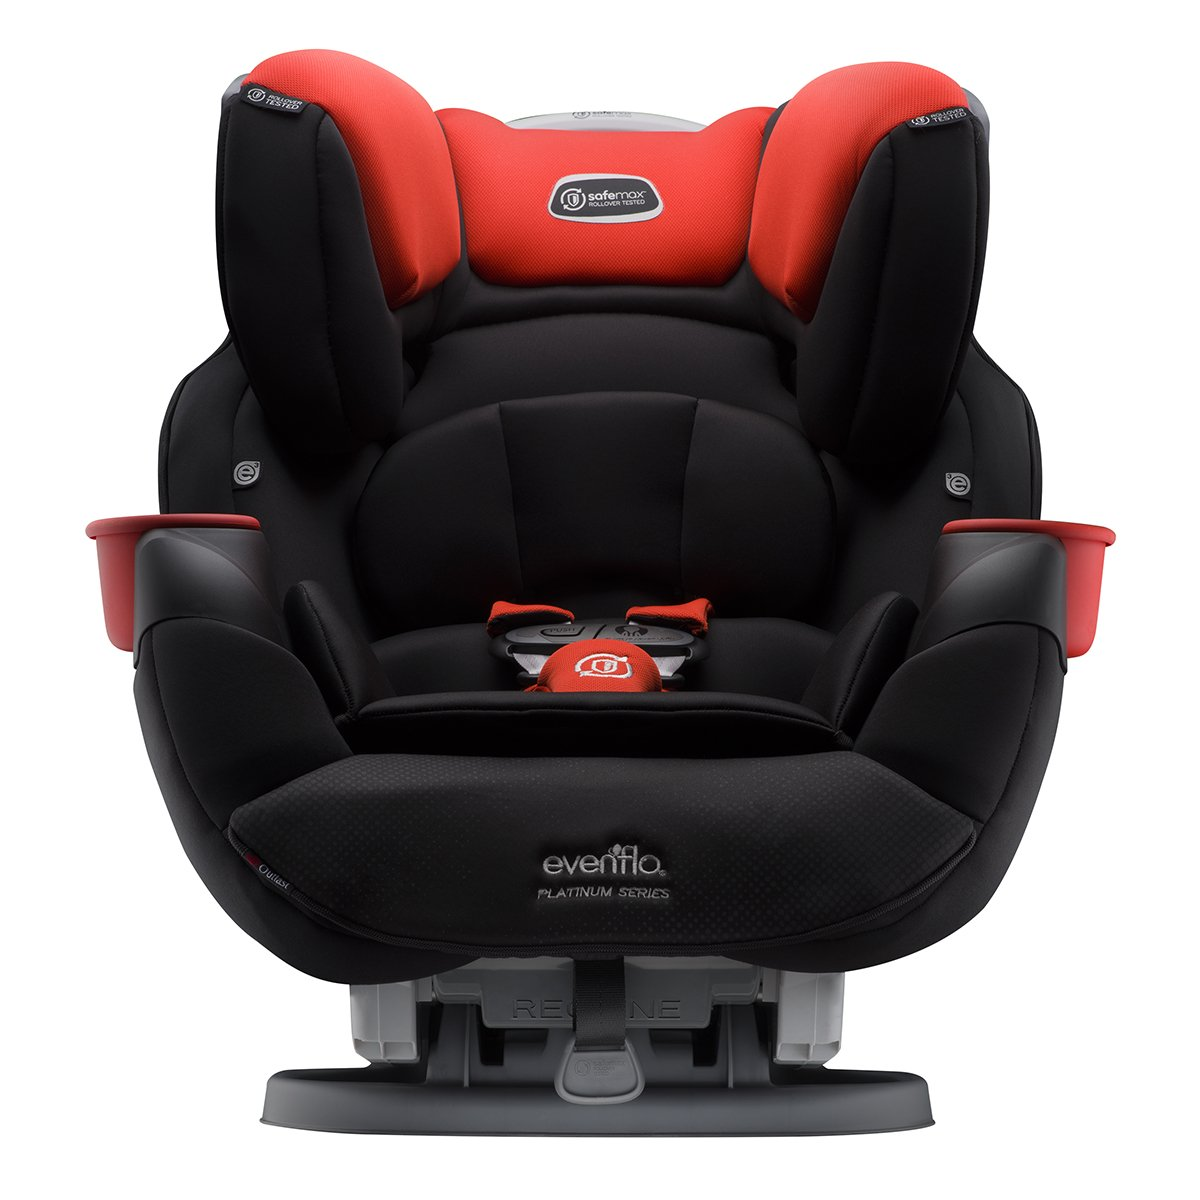 Evenflo Platinum SafeMax All-in-One Car Seat, Mason, Black, Red, One Size 38711929